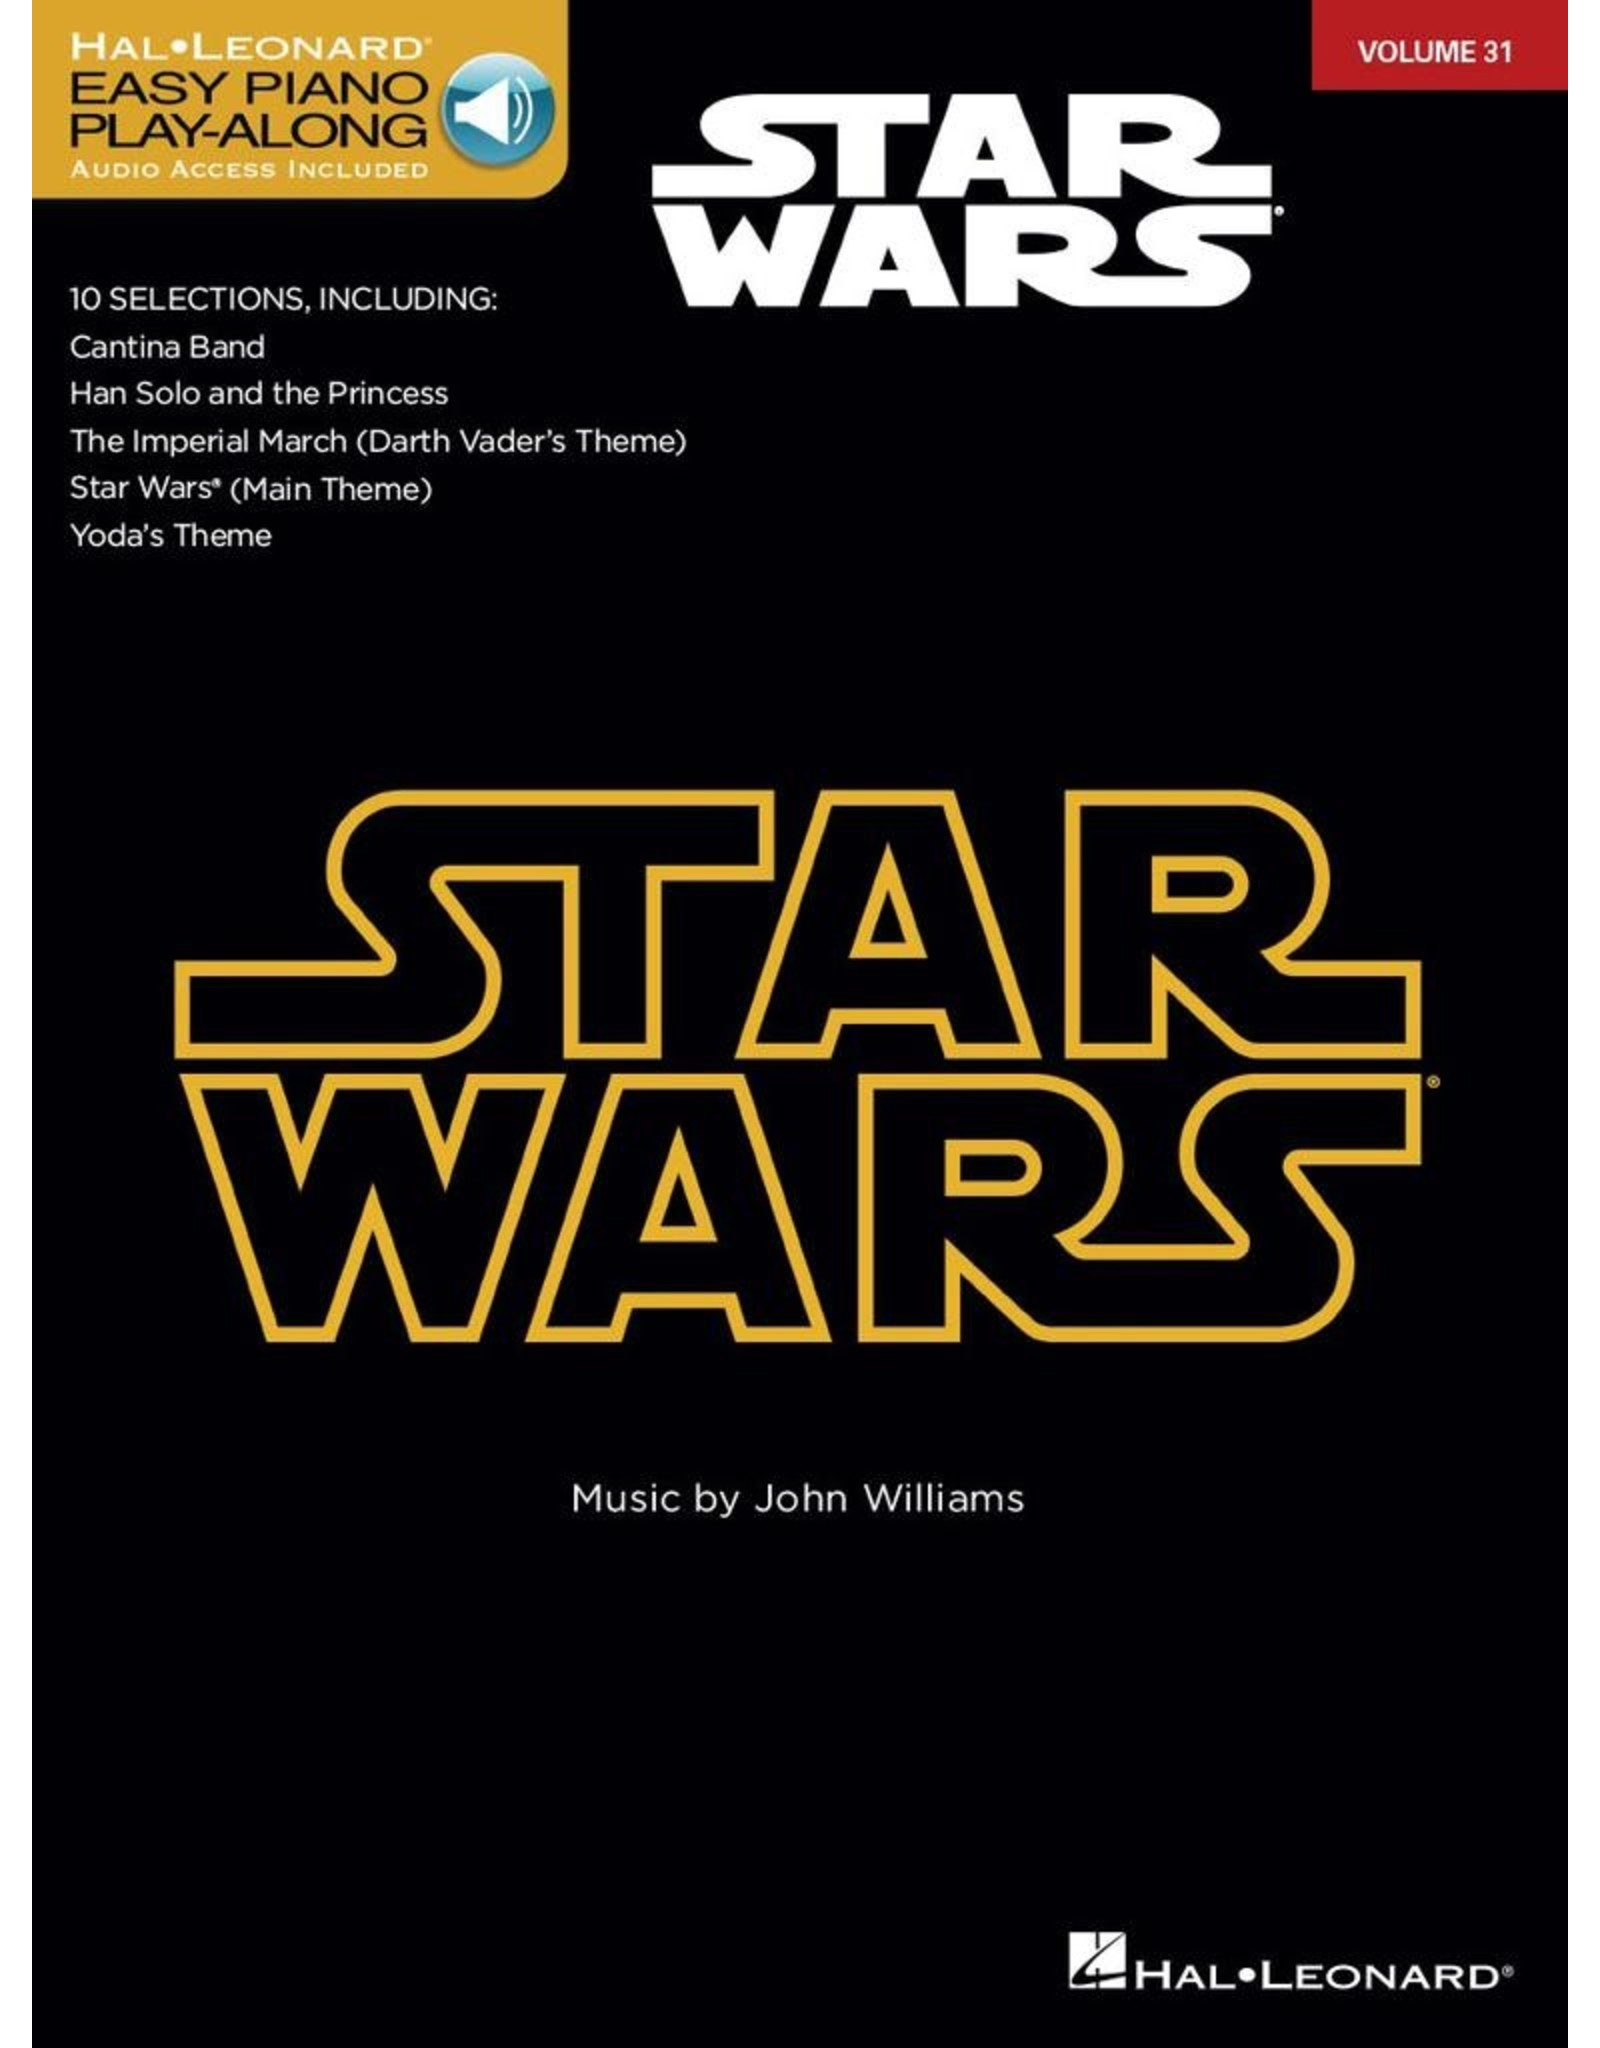 Hal Leonard Stars Wars Easy Piano with Audio Access